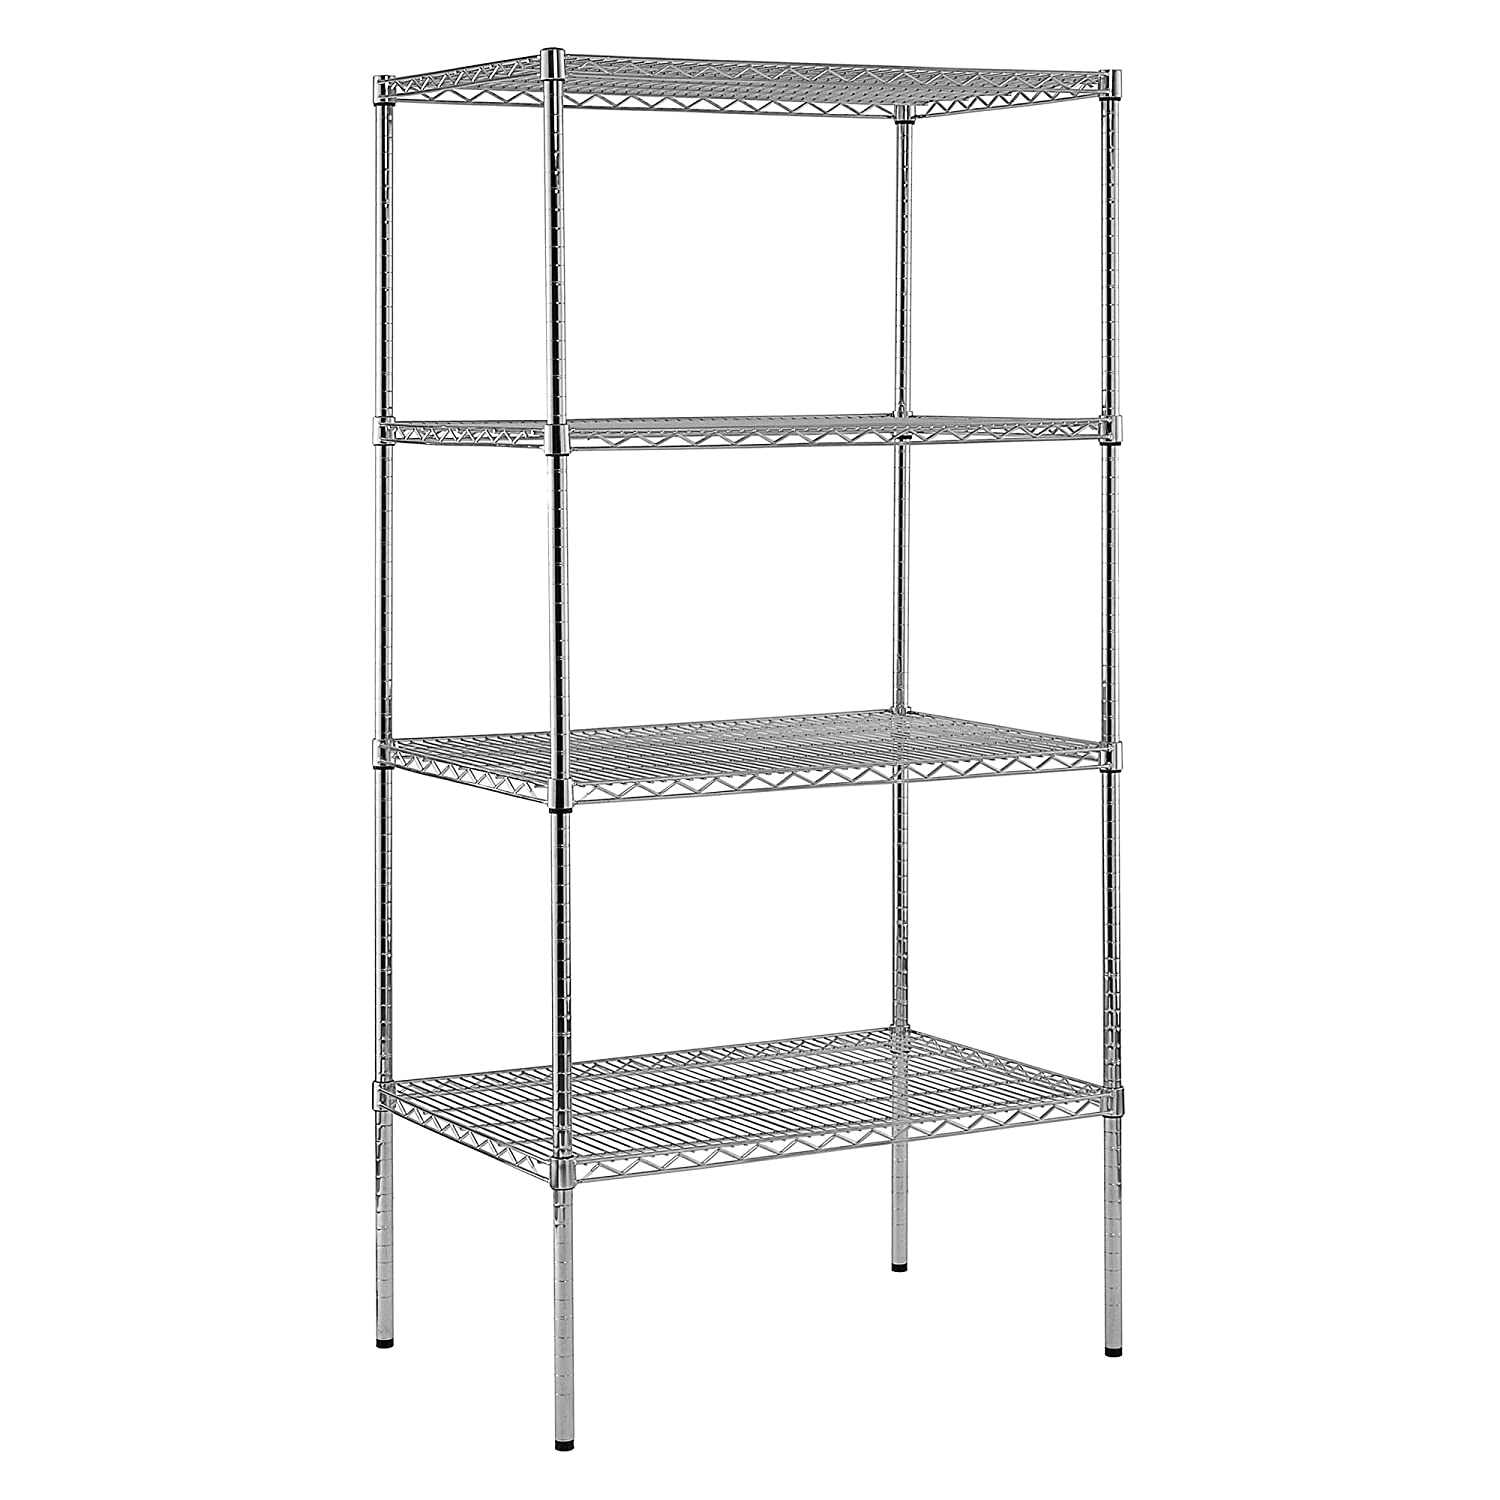 Amazon.com: Sandusky Lee WS362486-C Chrome Steel Wire Shelving, 4 ...